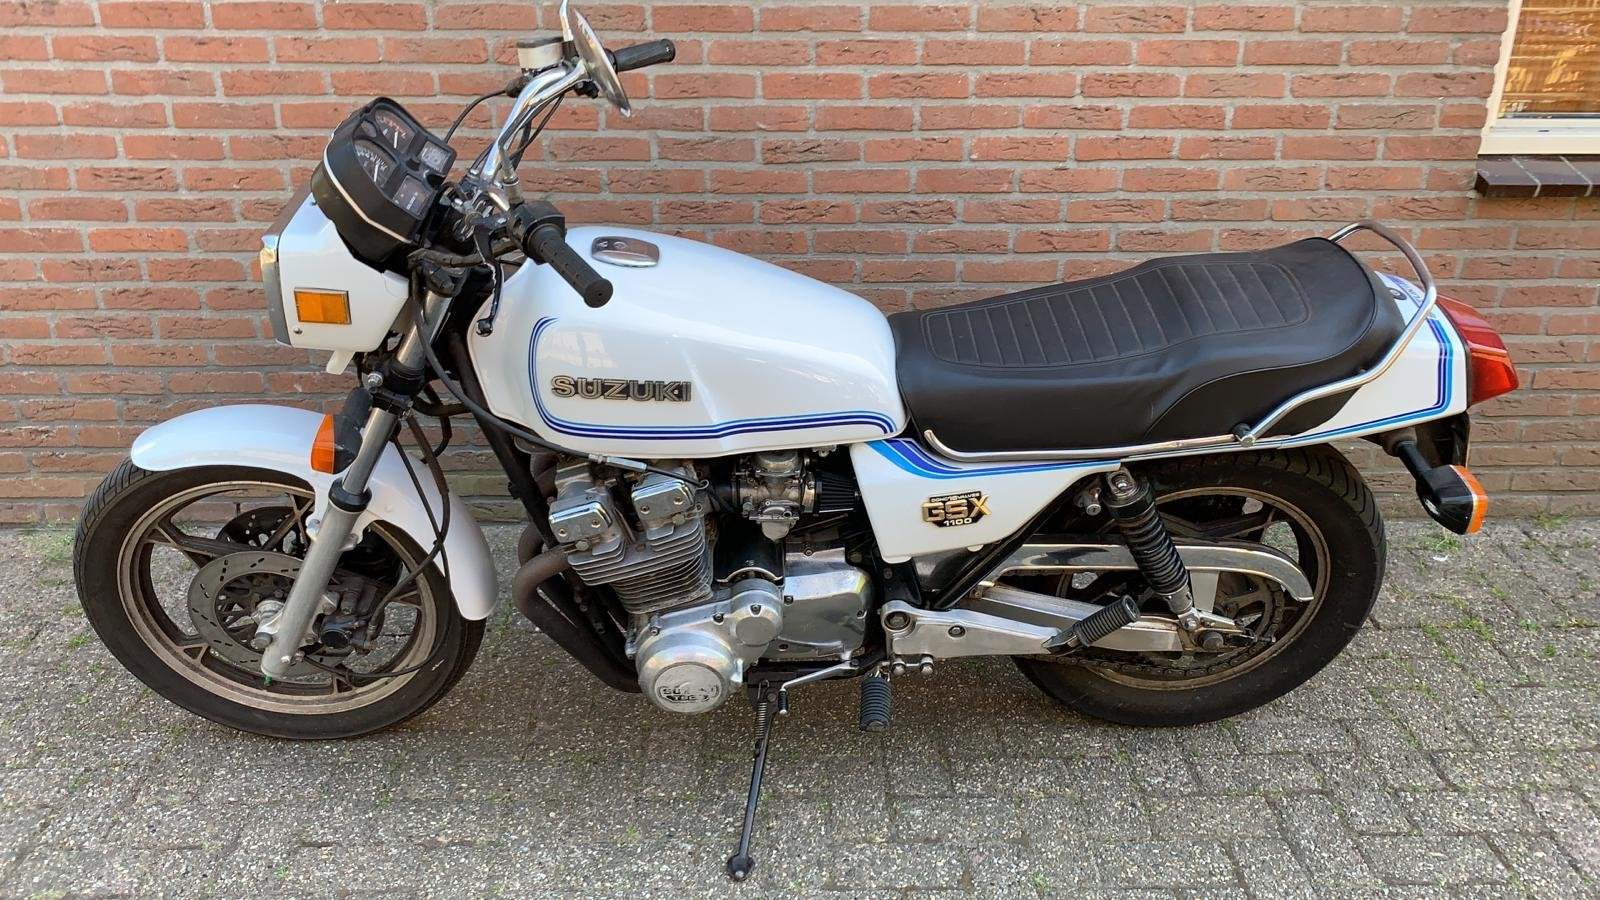 1980 Suzuki GSX 1100 naked version  For Sale (picture 3 of 6)